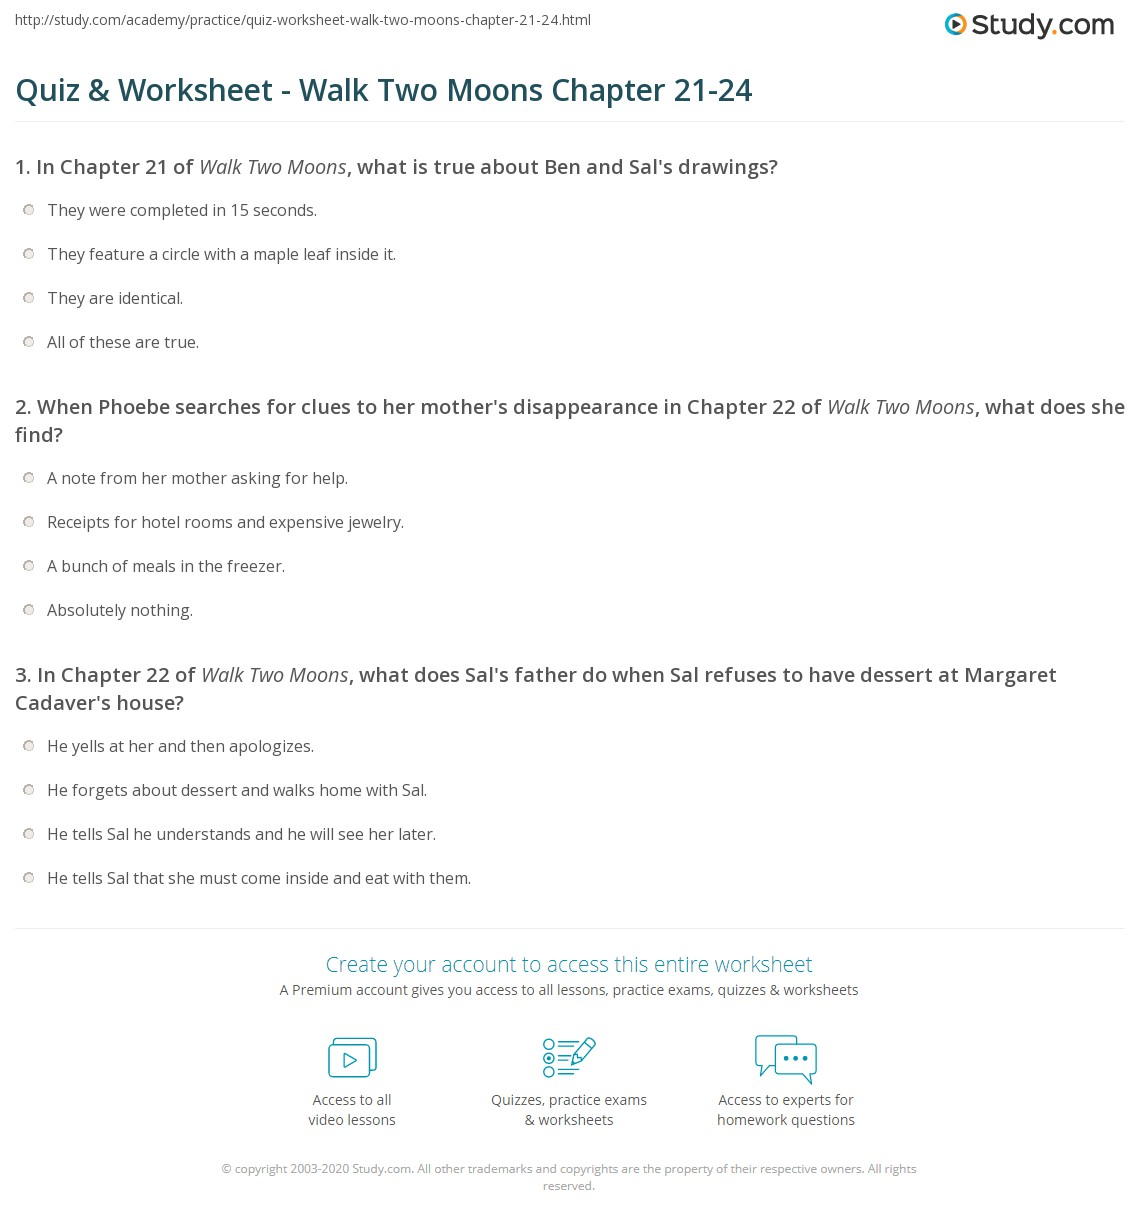 Worksheets Walk Two Moons Worksheets quiz worksheet walk two moons chapter 21 24 study com print summary chapters worksheet